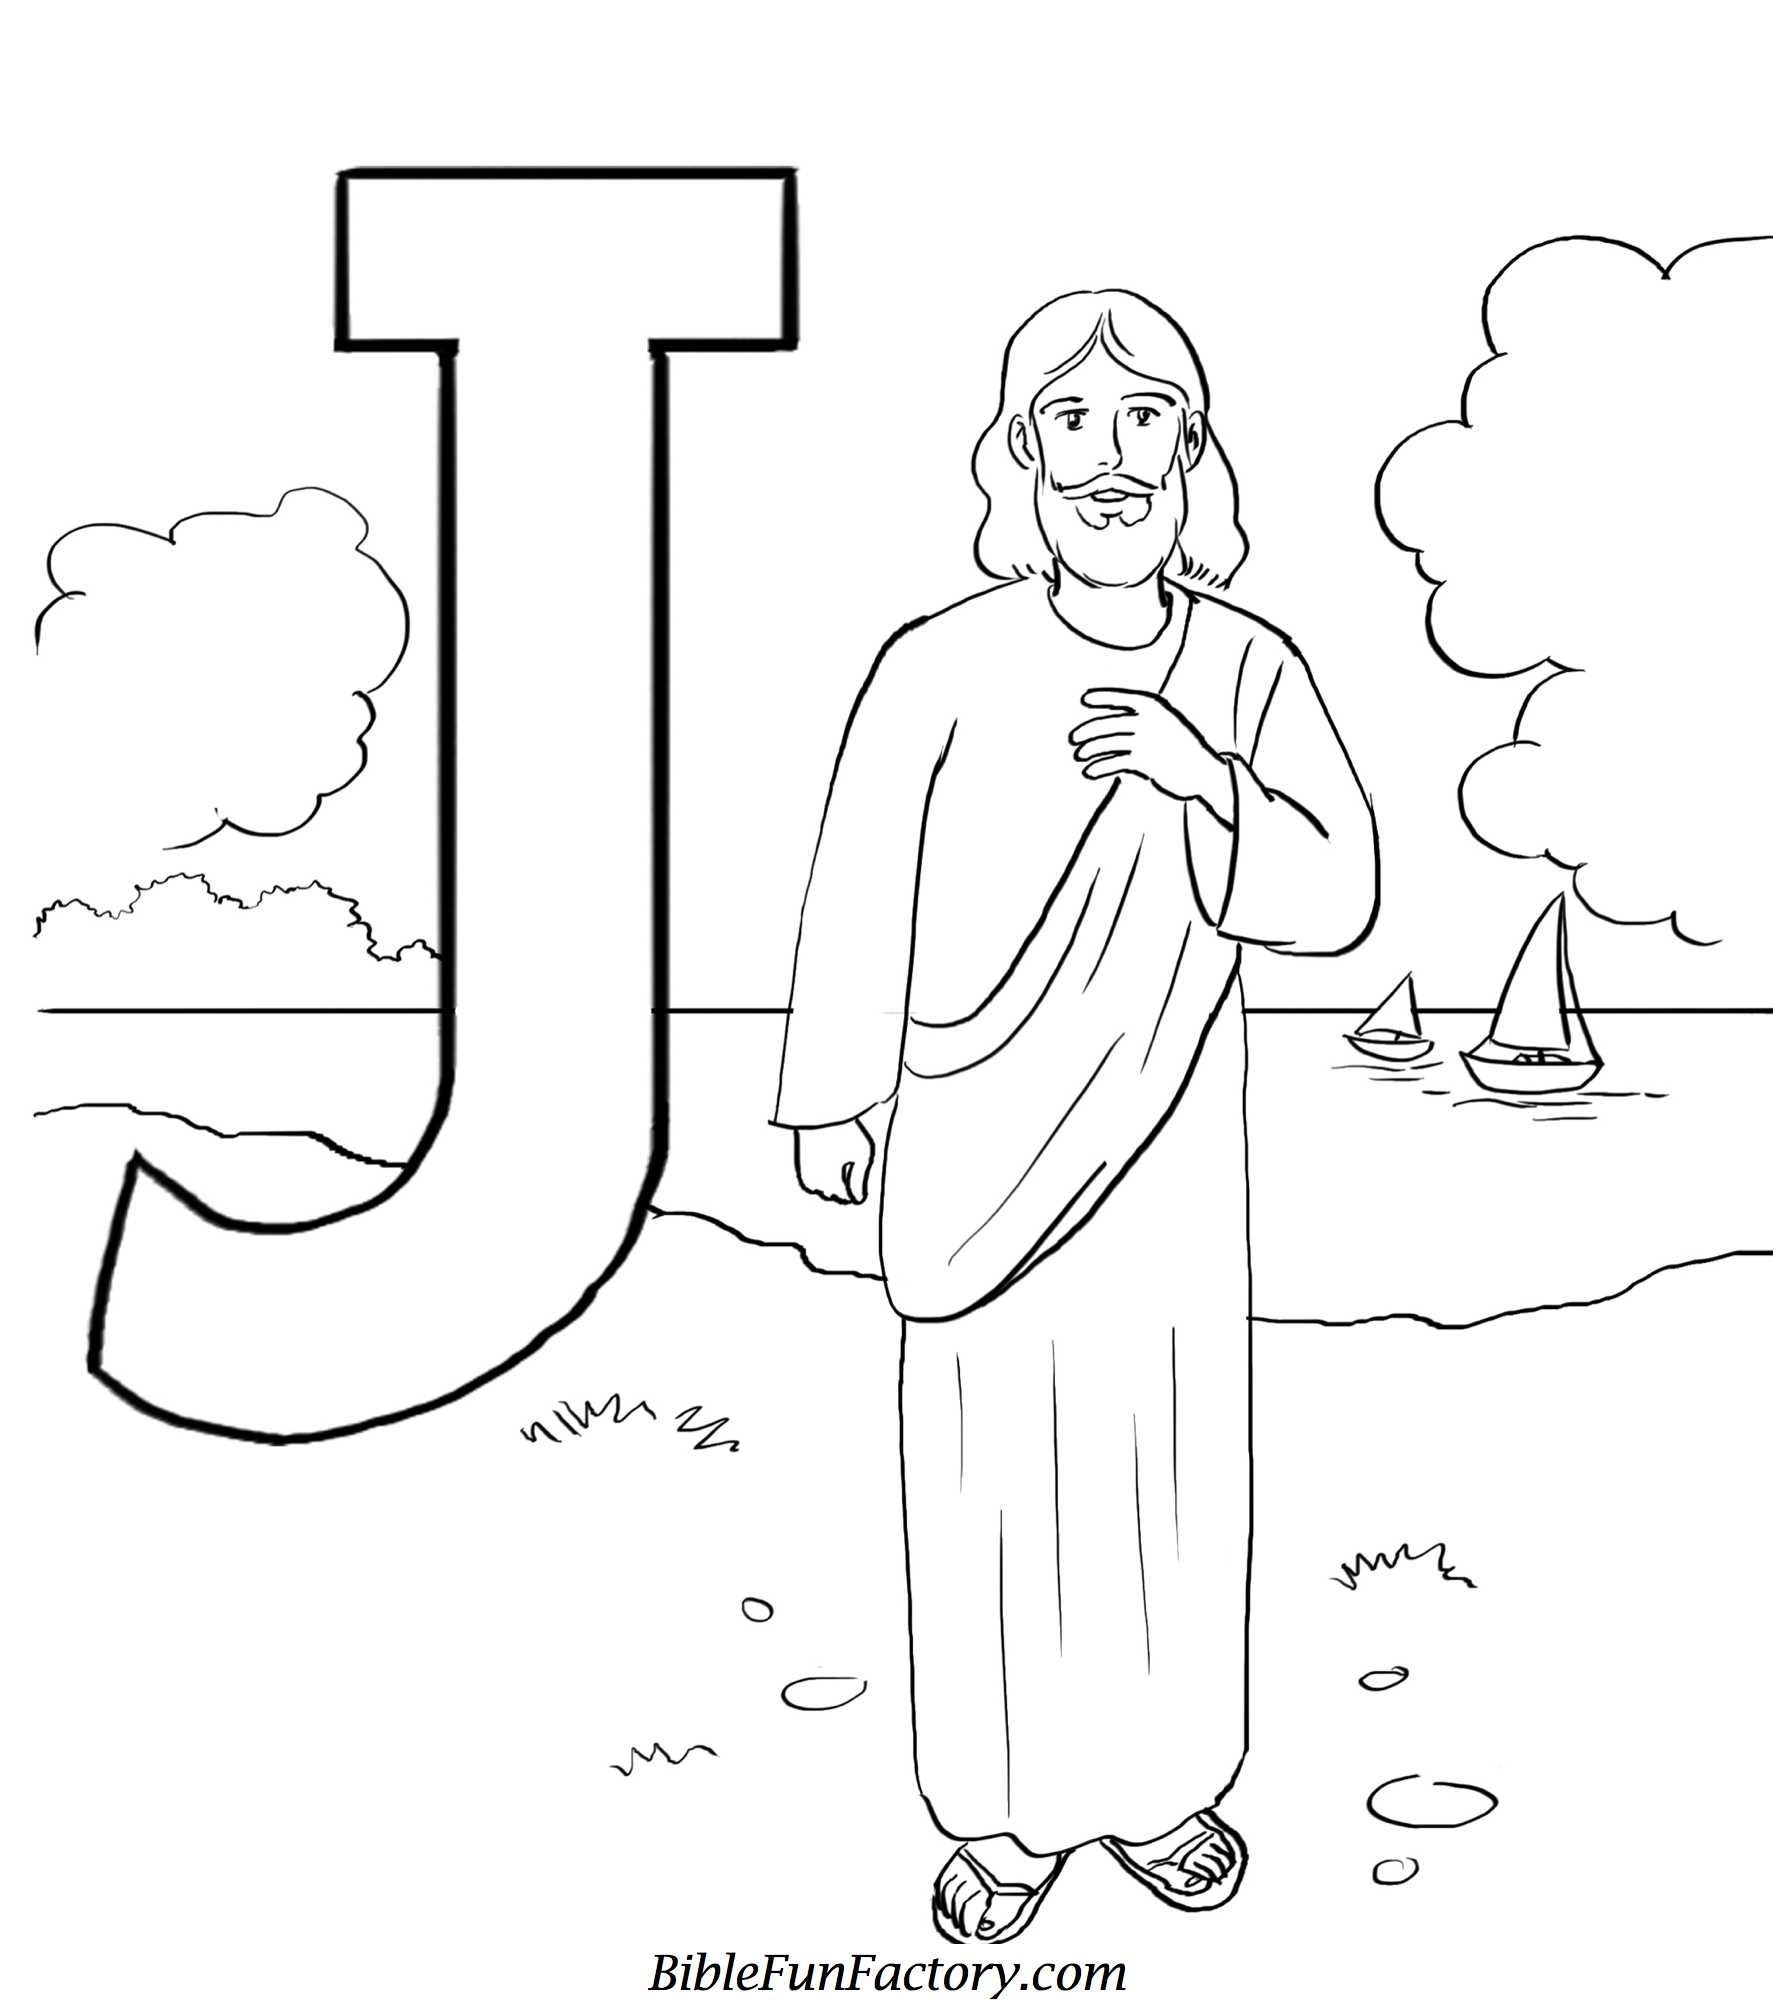 Jesus Christ Coloring Pages is for Jesus Coloring Sheet Kids